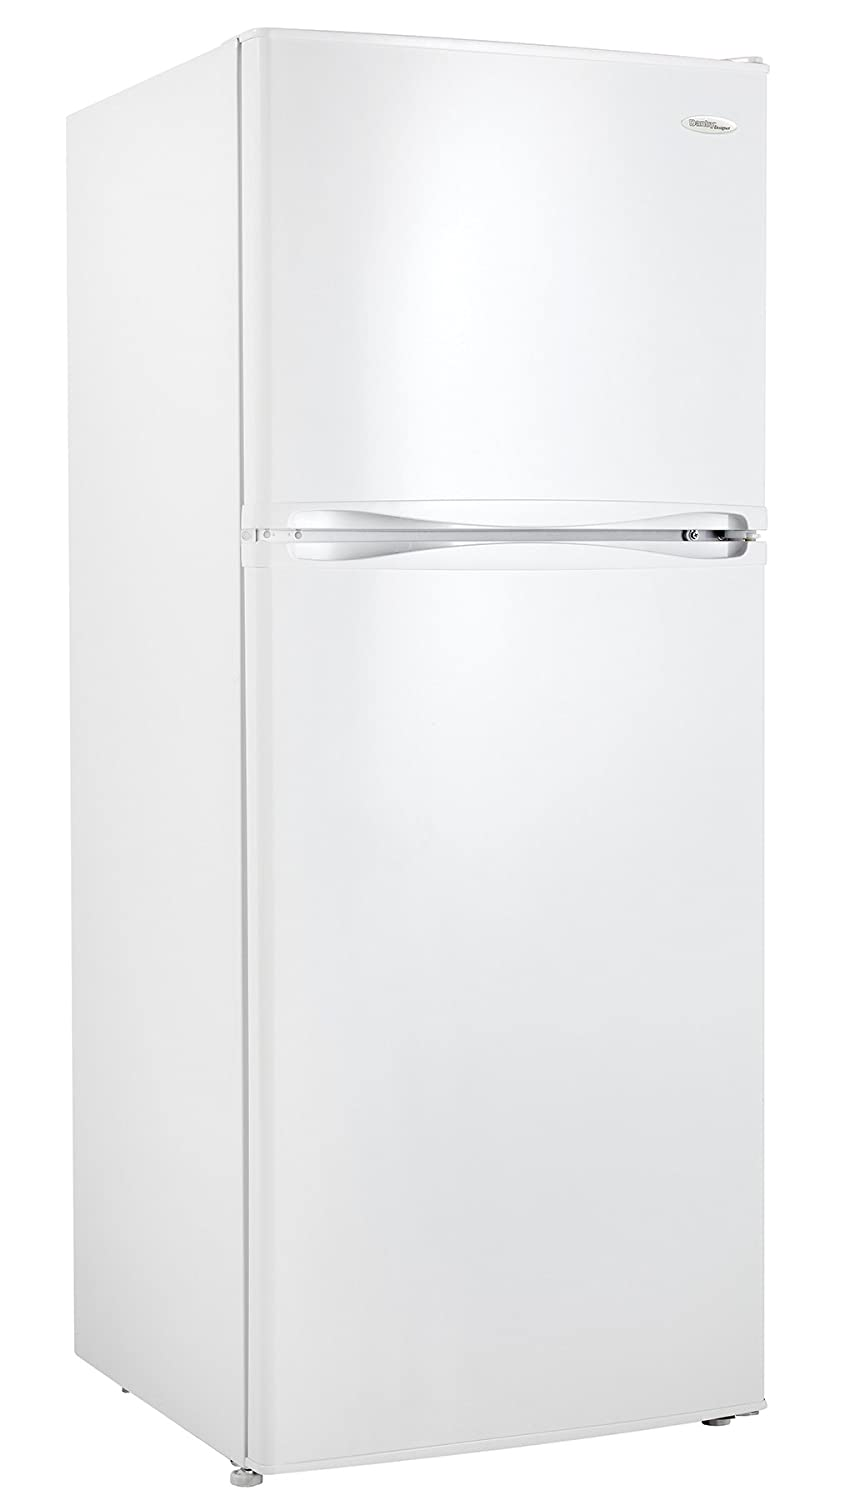 Amazon.com: Danby DFF100C2WDD Frost-Free Refrigerator with Top-Mount ...